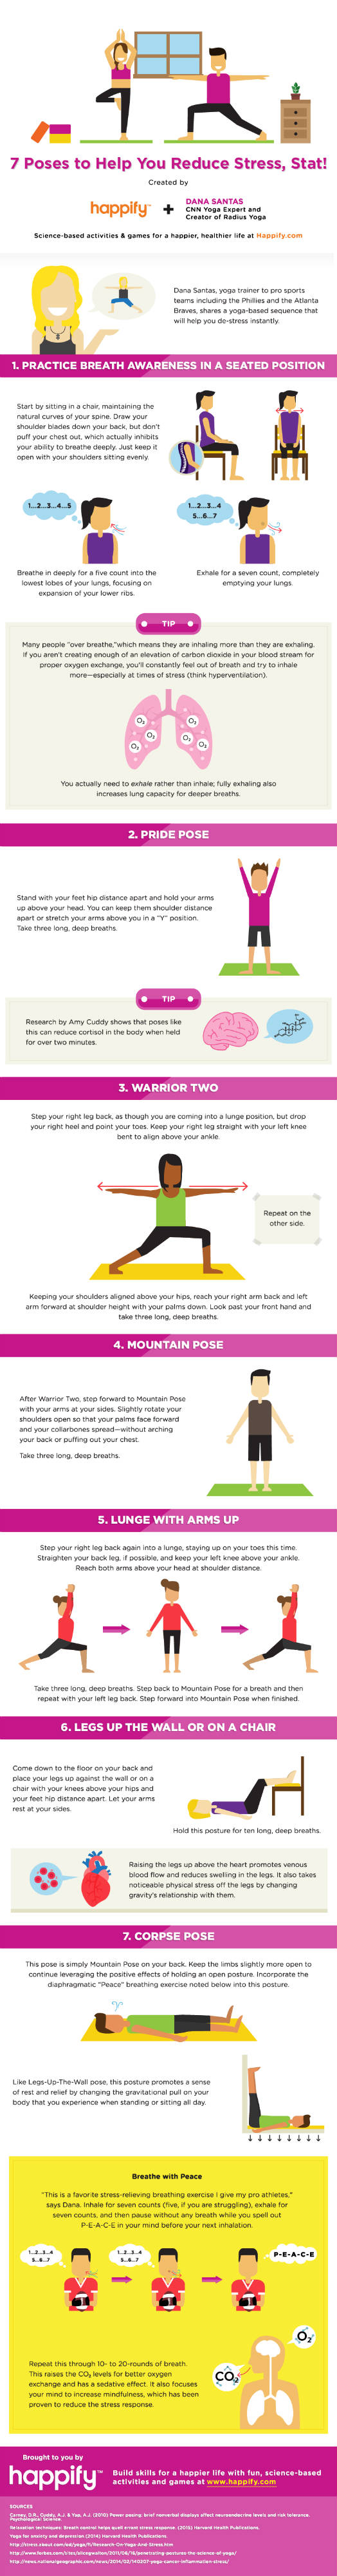 7 Breathing Exercises and Yoga Poses to Help You Reduce ...